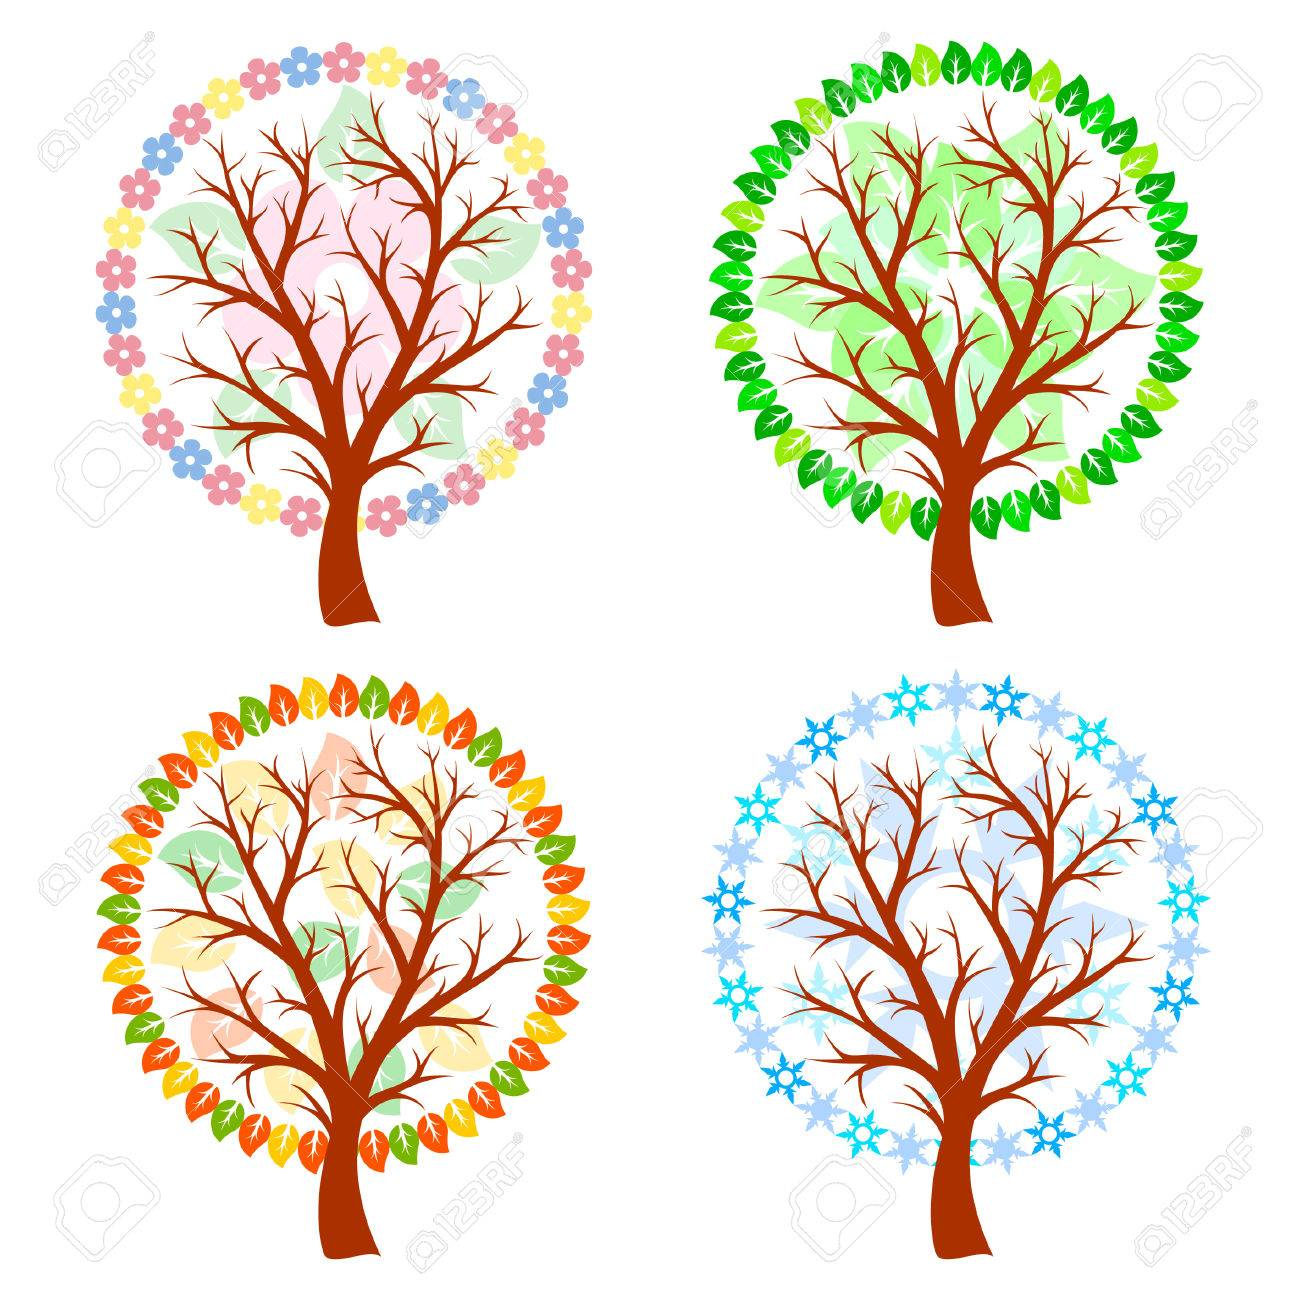 Abstract trees - four seasons Stock Vector - 6969116